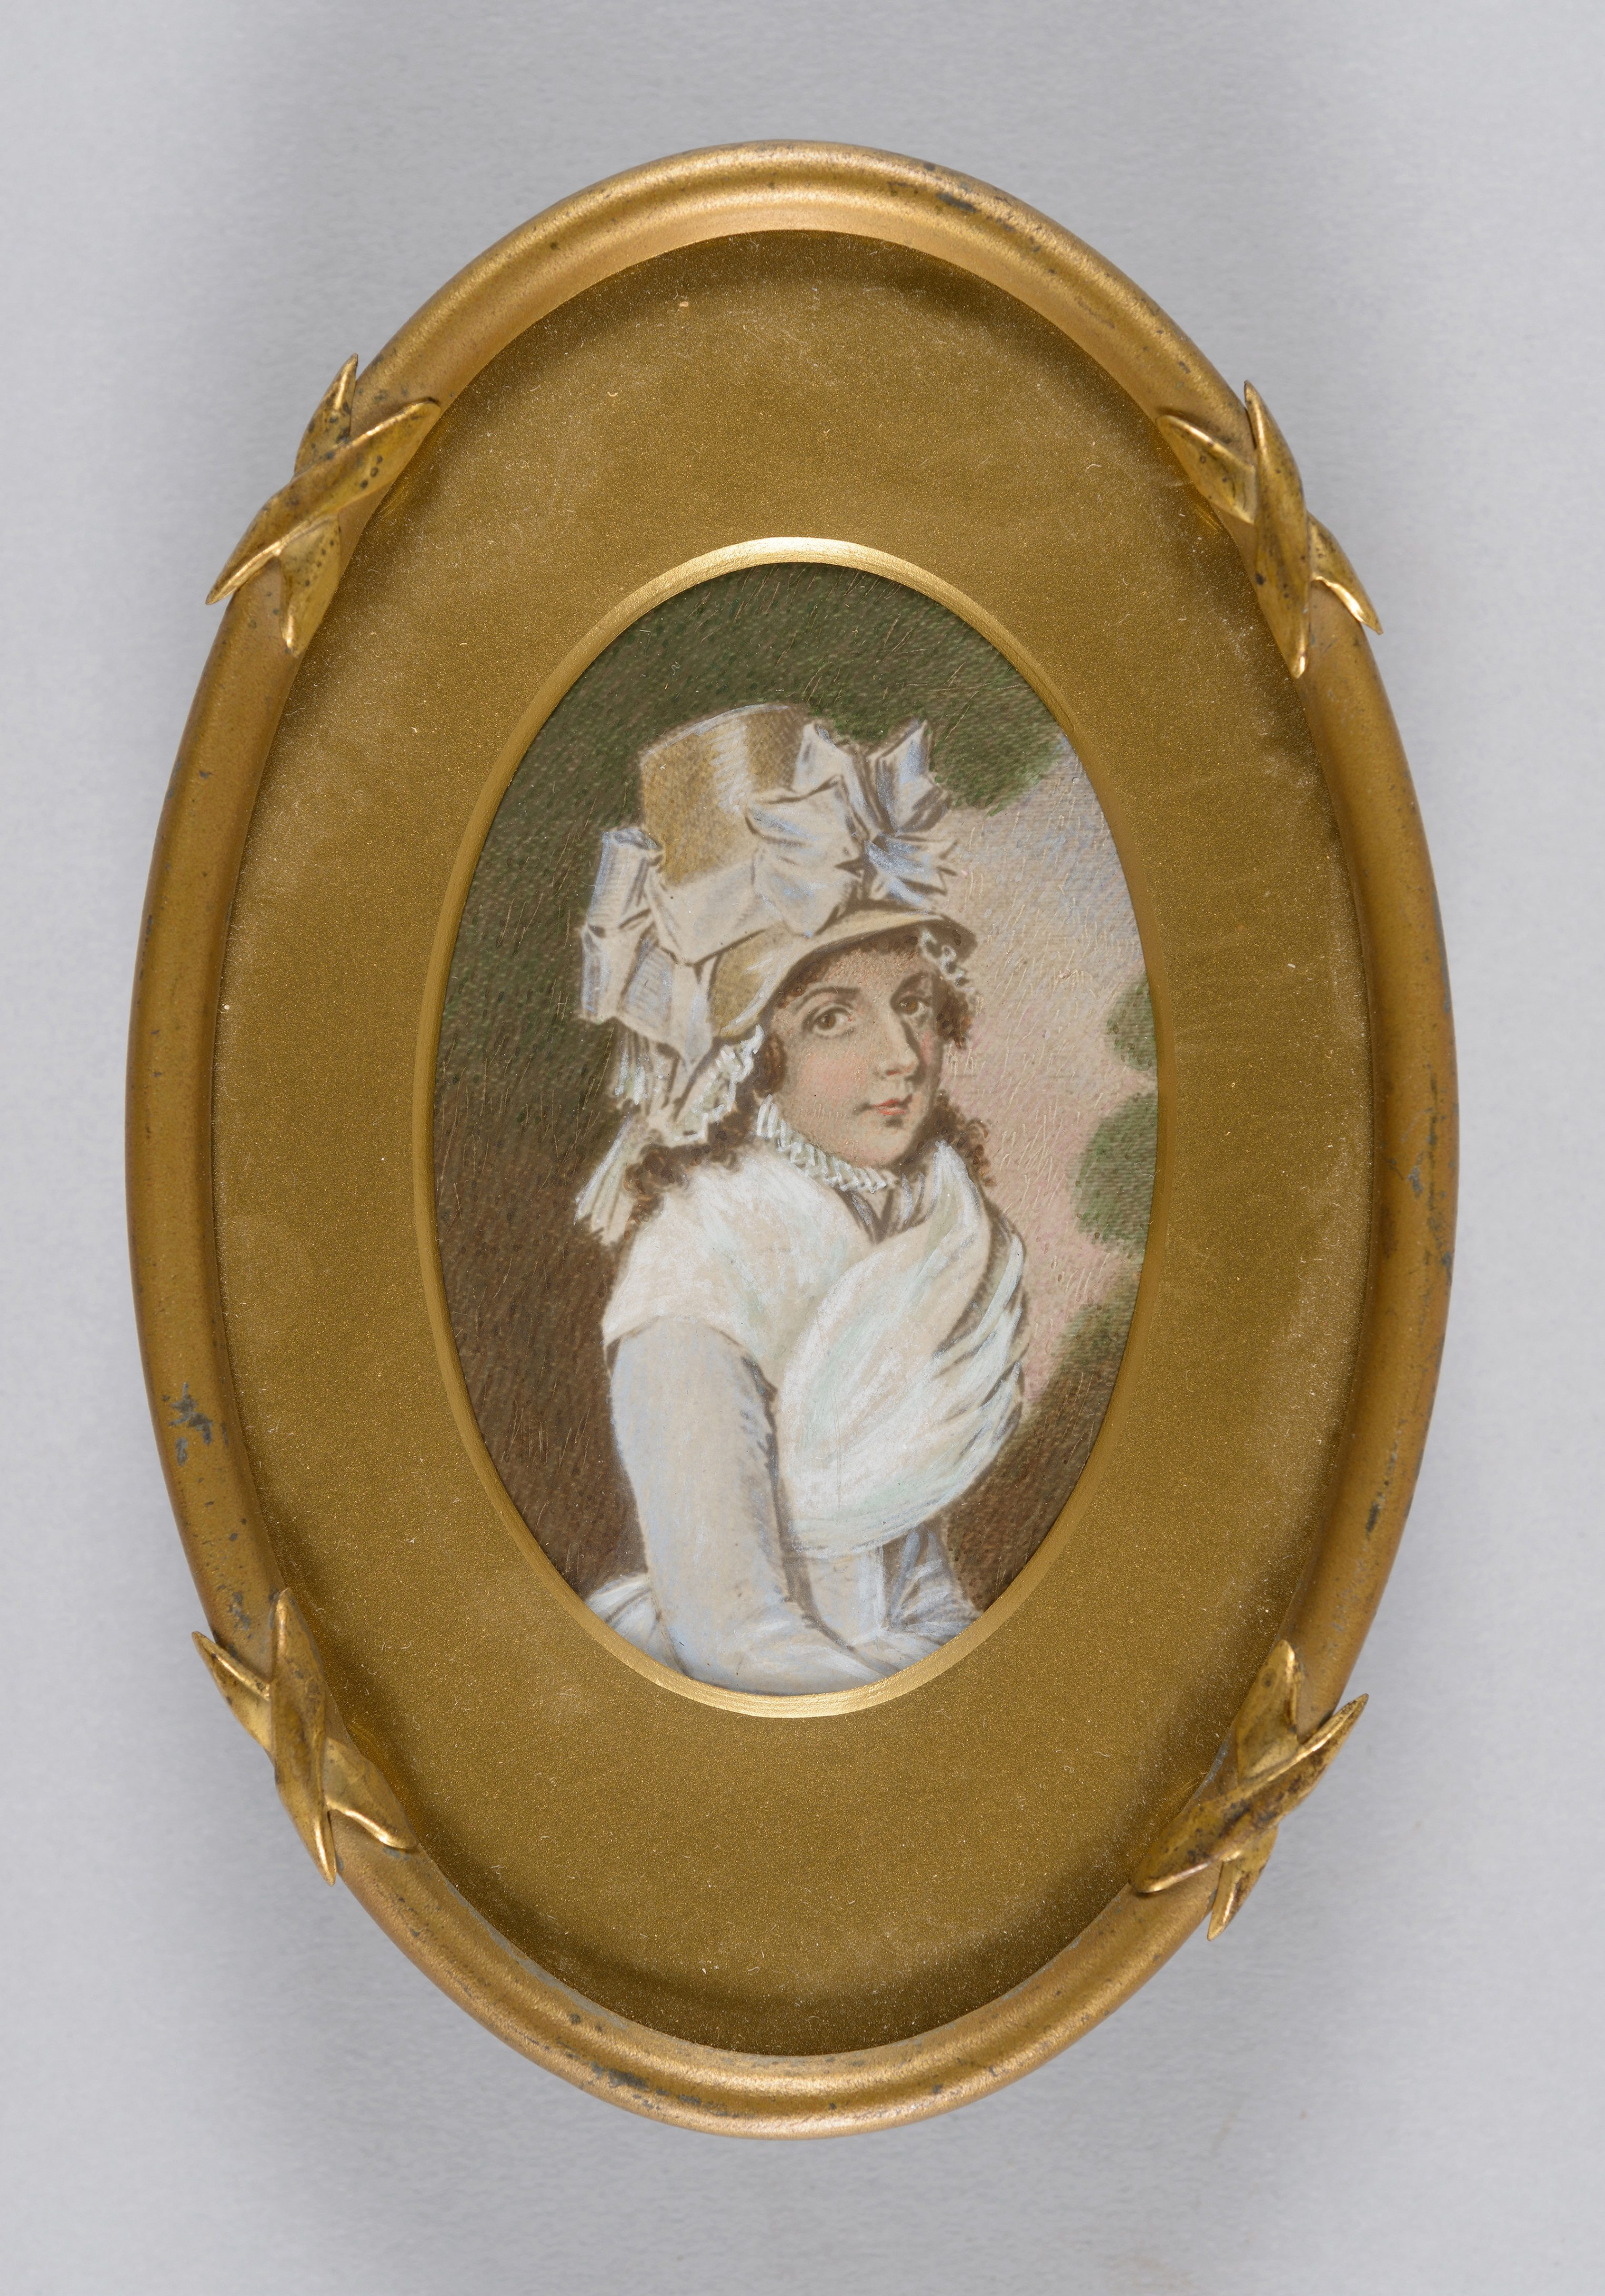 Portrait Miniature Of Elizabeth Marsden In Her Wedding Dress Hull 1793 Gift The Royal Australian Historical Society 1981 MAAS Collection P3150